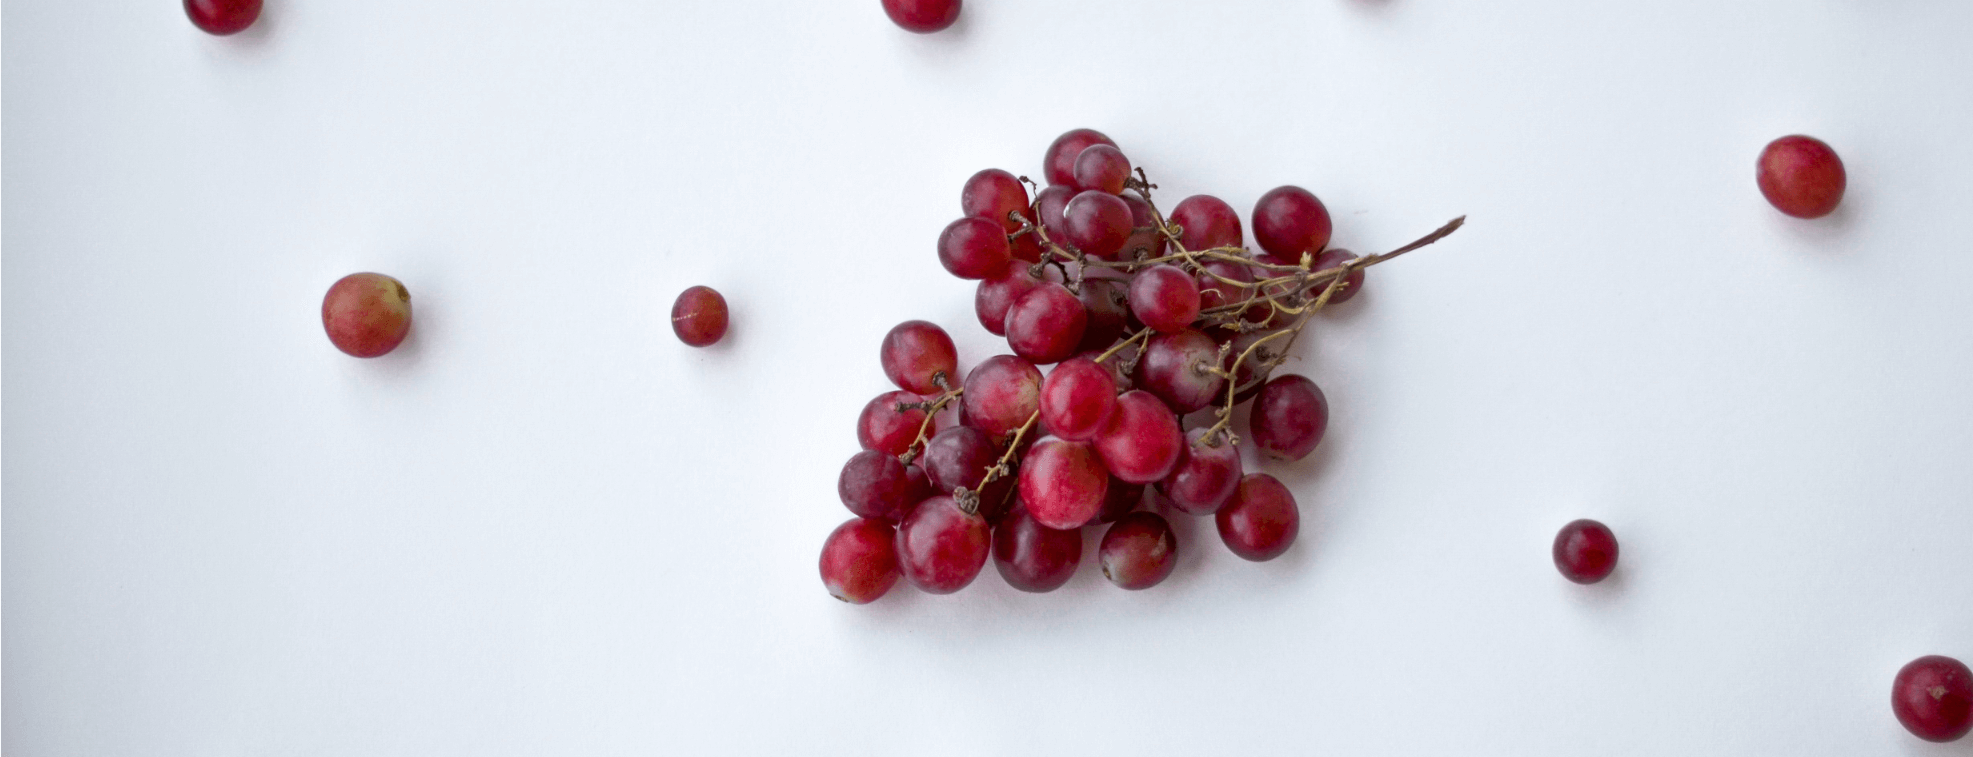 Red grapes on a white table